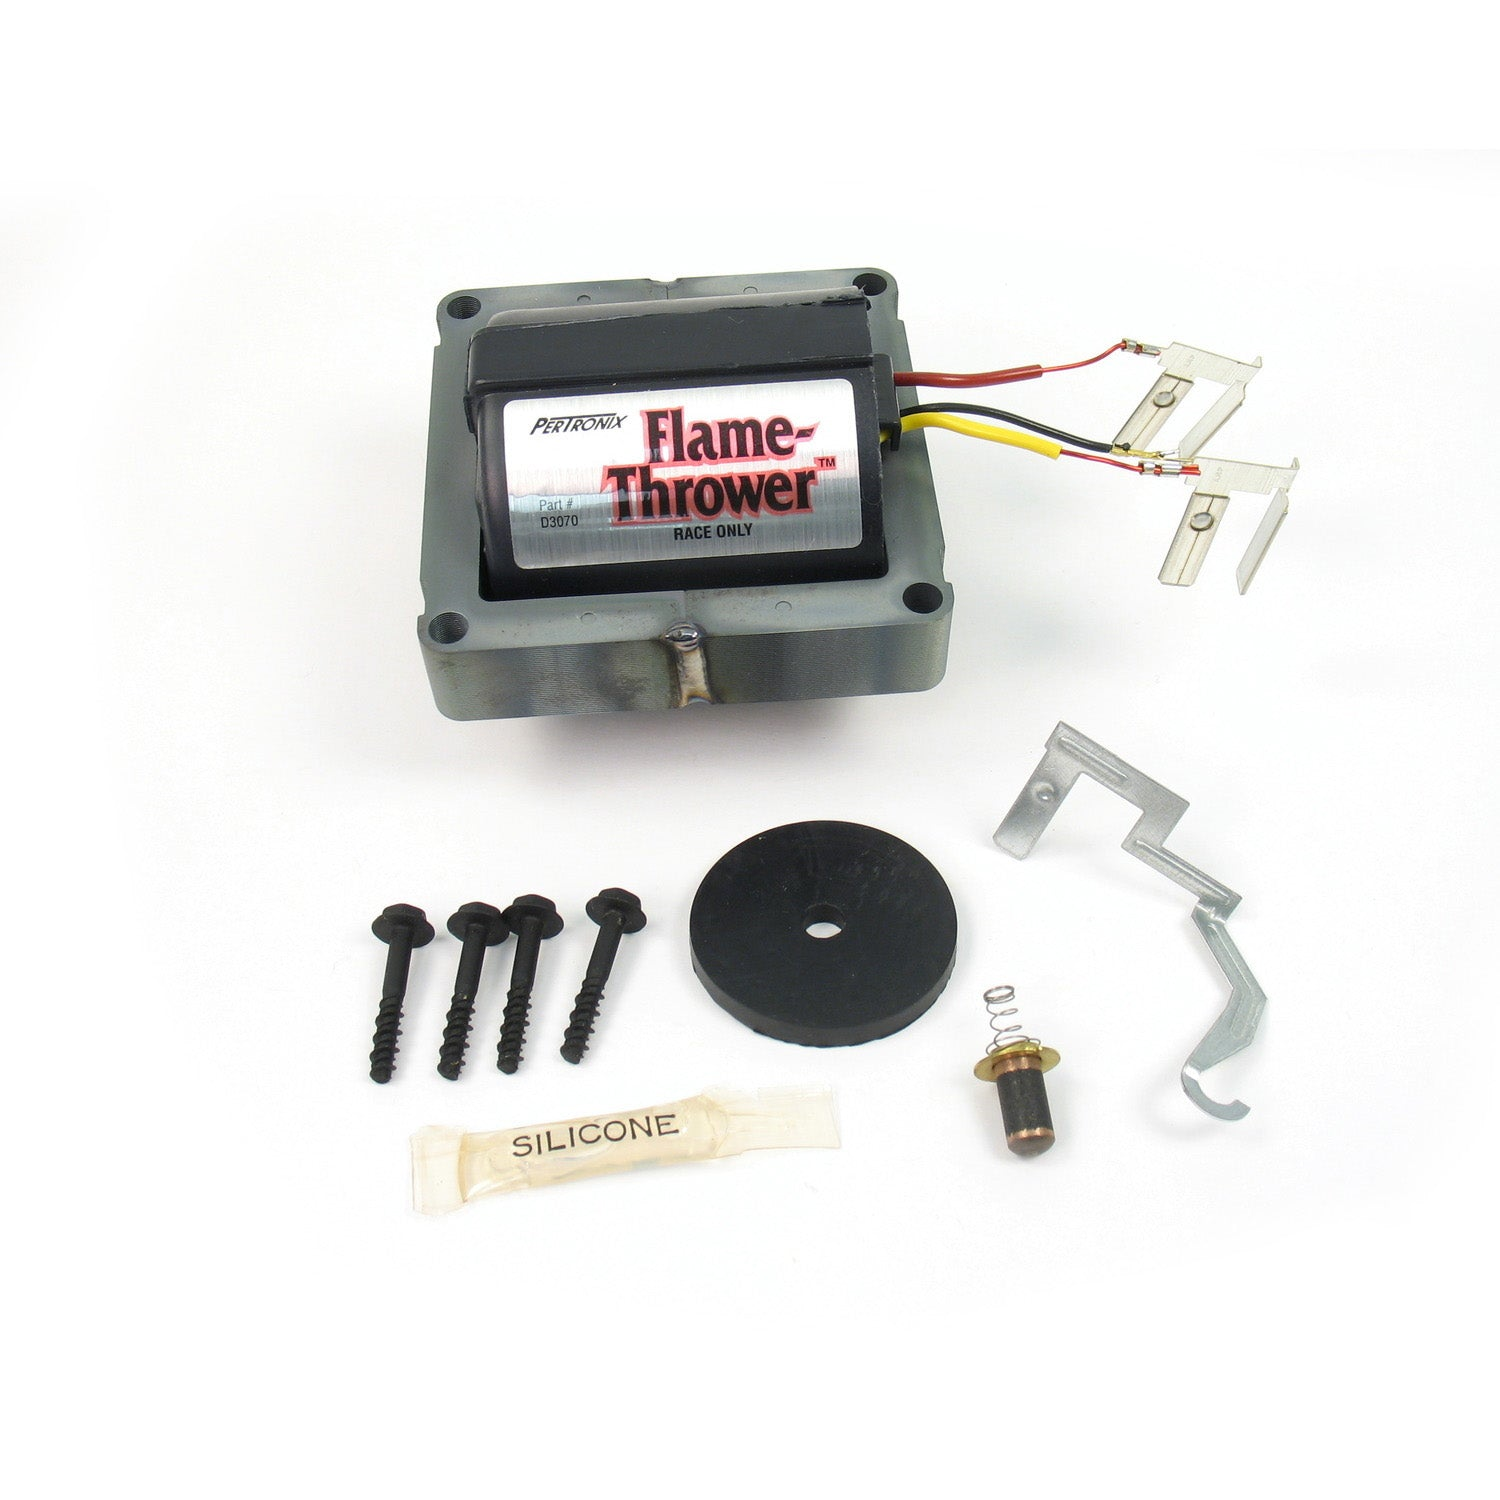 PerTronix D3070 Flame-Thrower HEI Race Coil GM 50,000